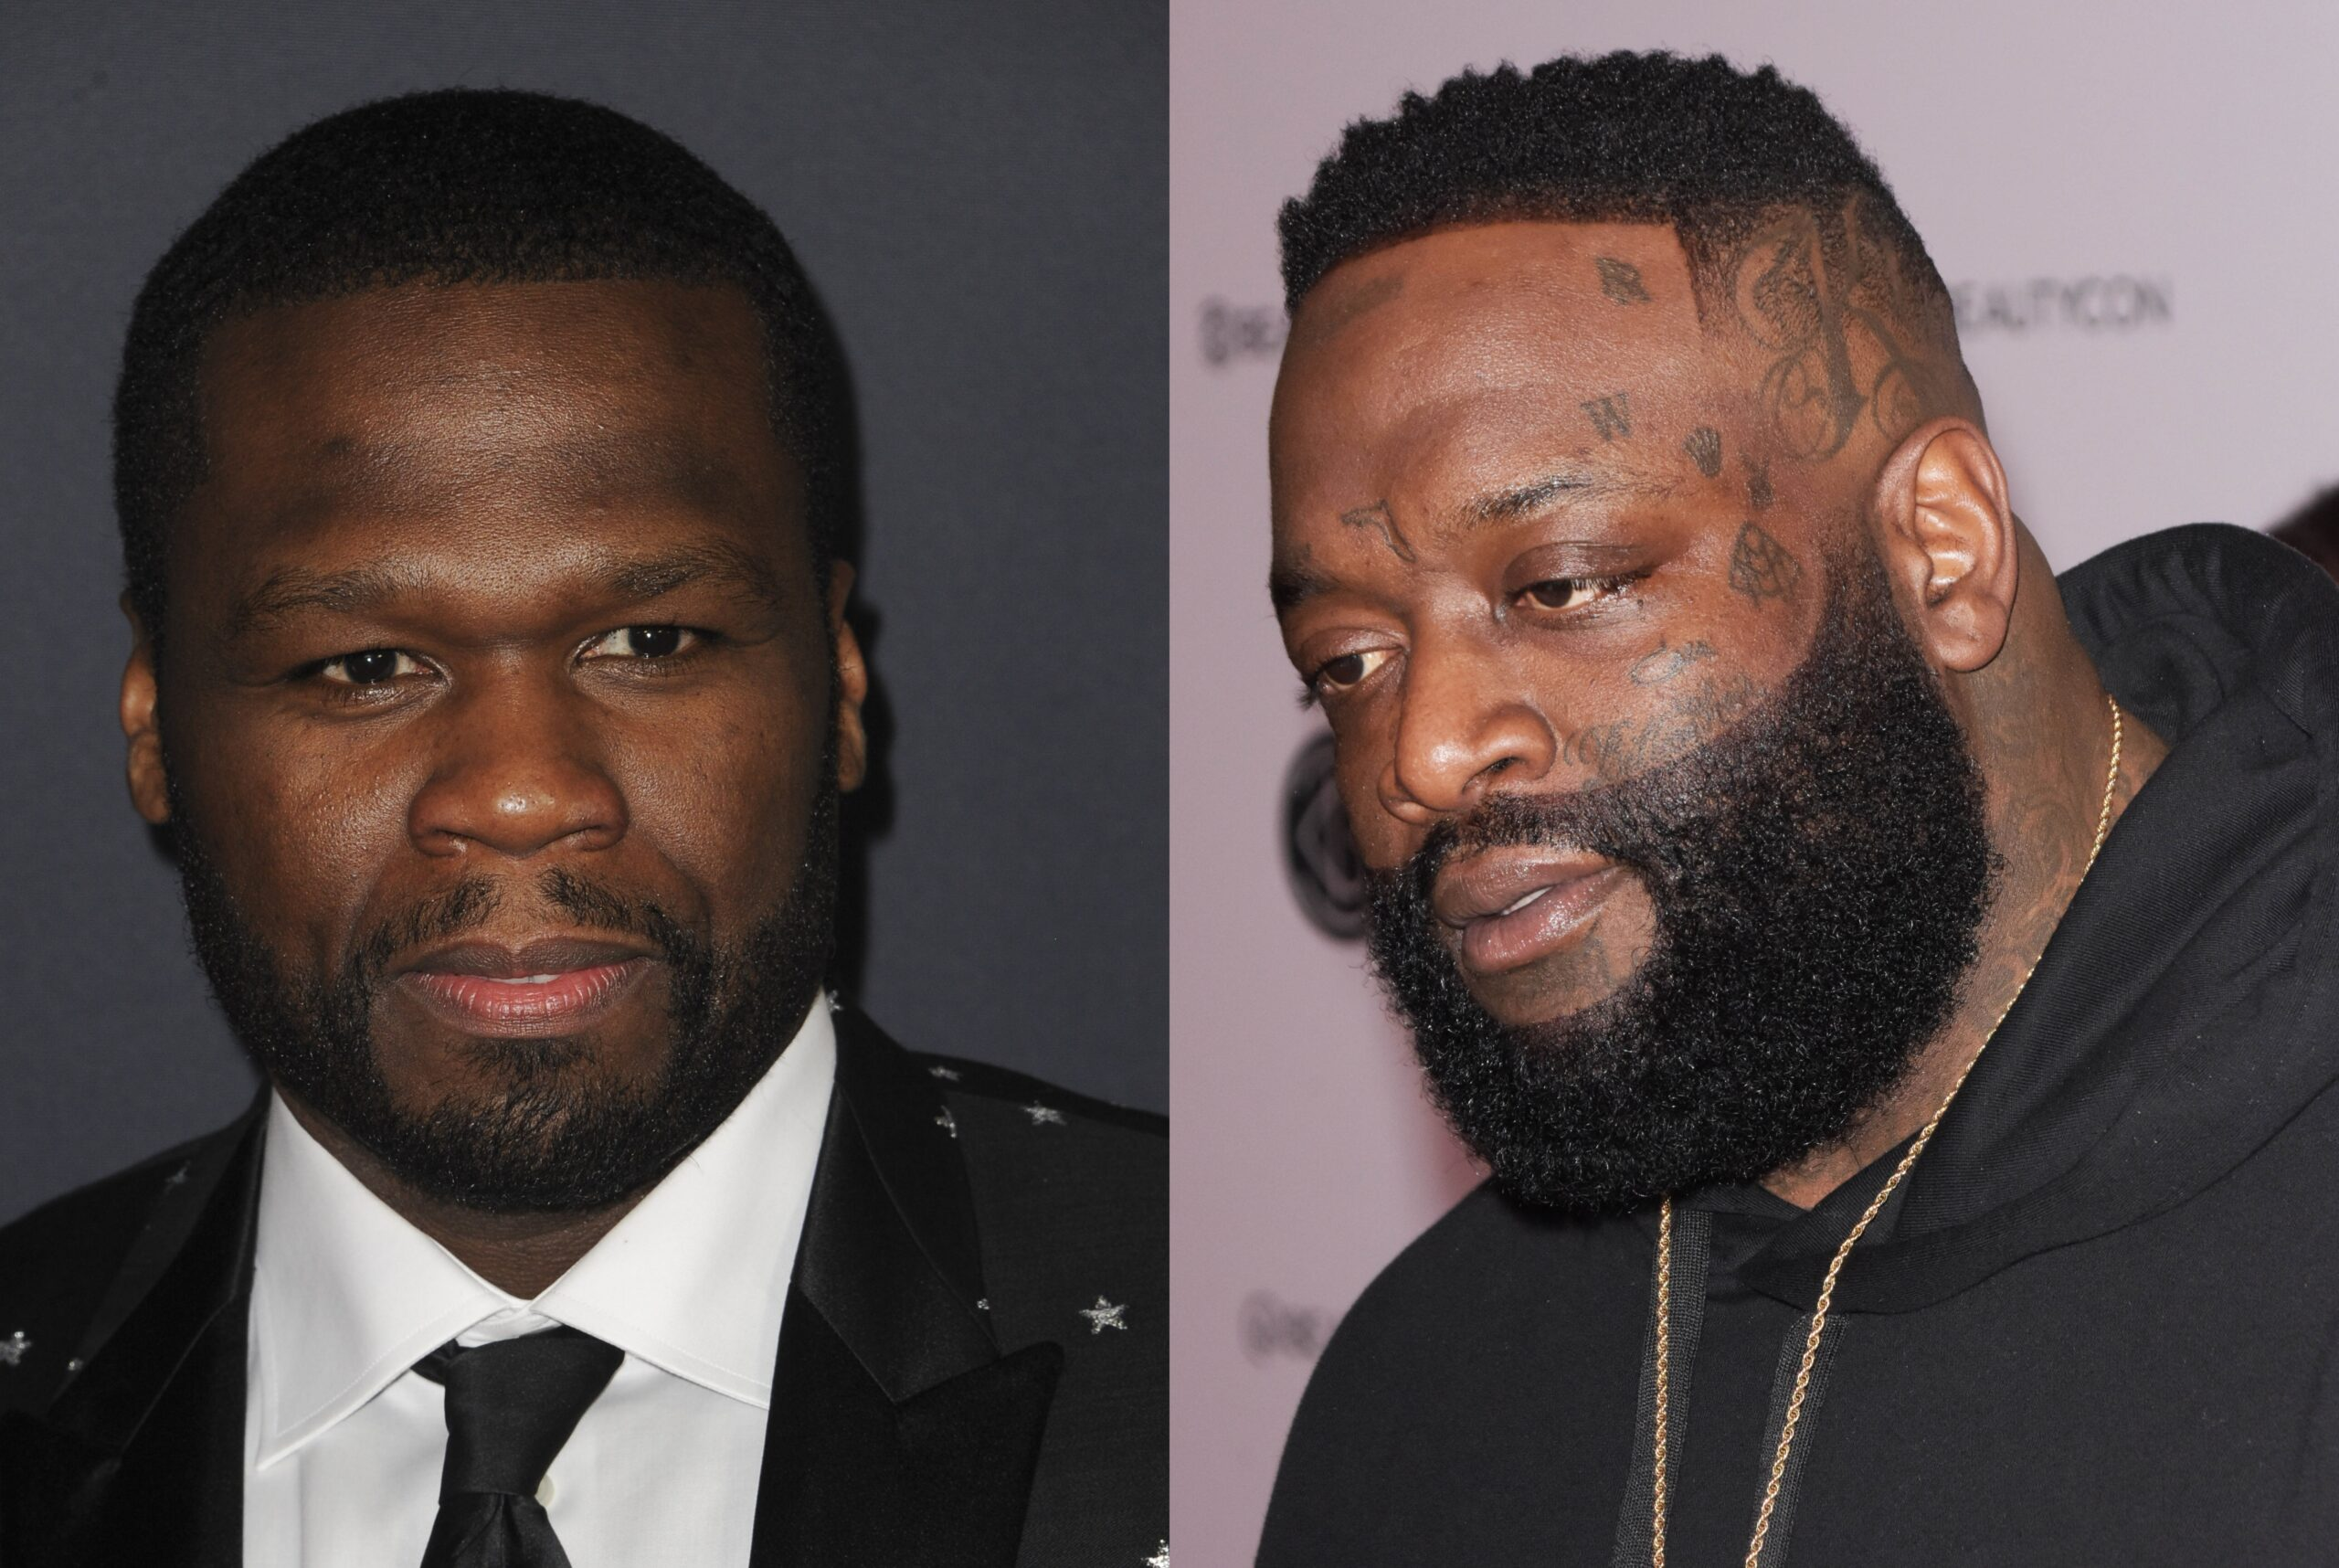 EXCLUSIVE: 50 Cent's Deposition Date For Rick Ross Finally Confirmed